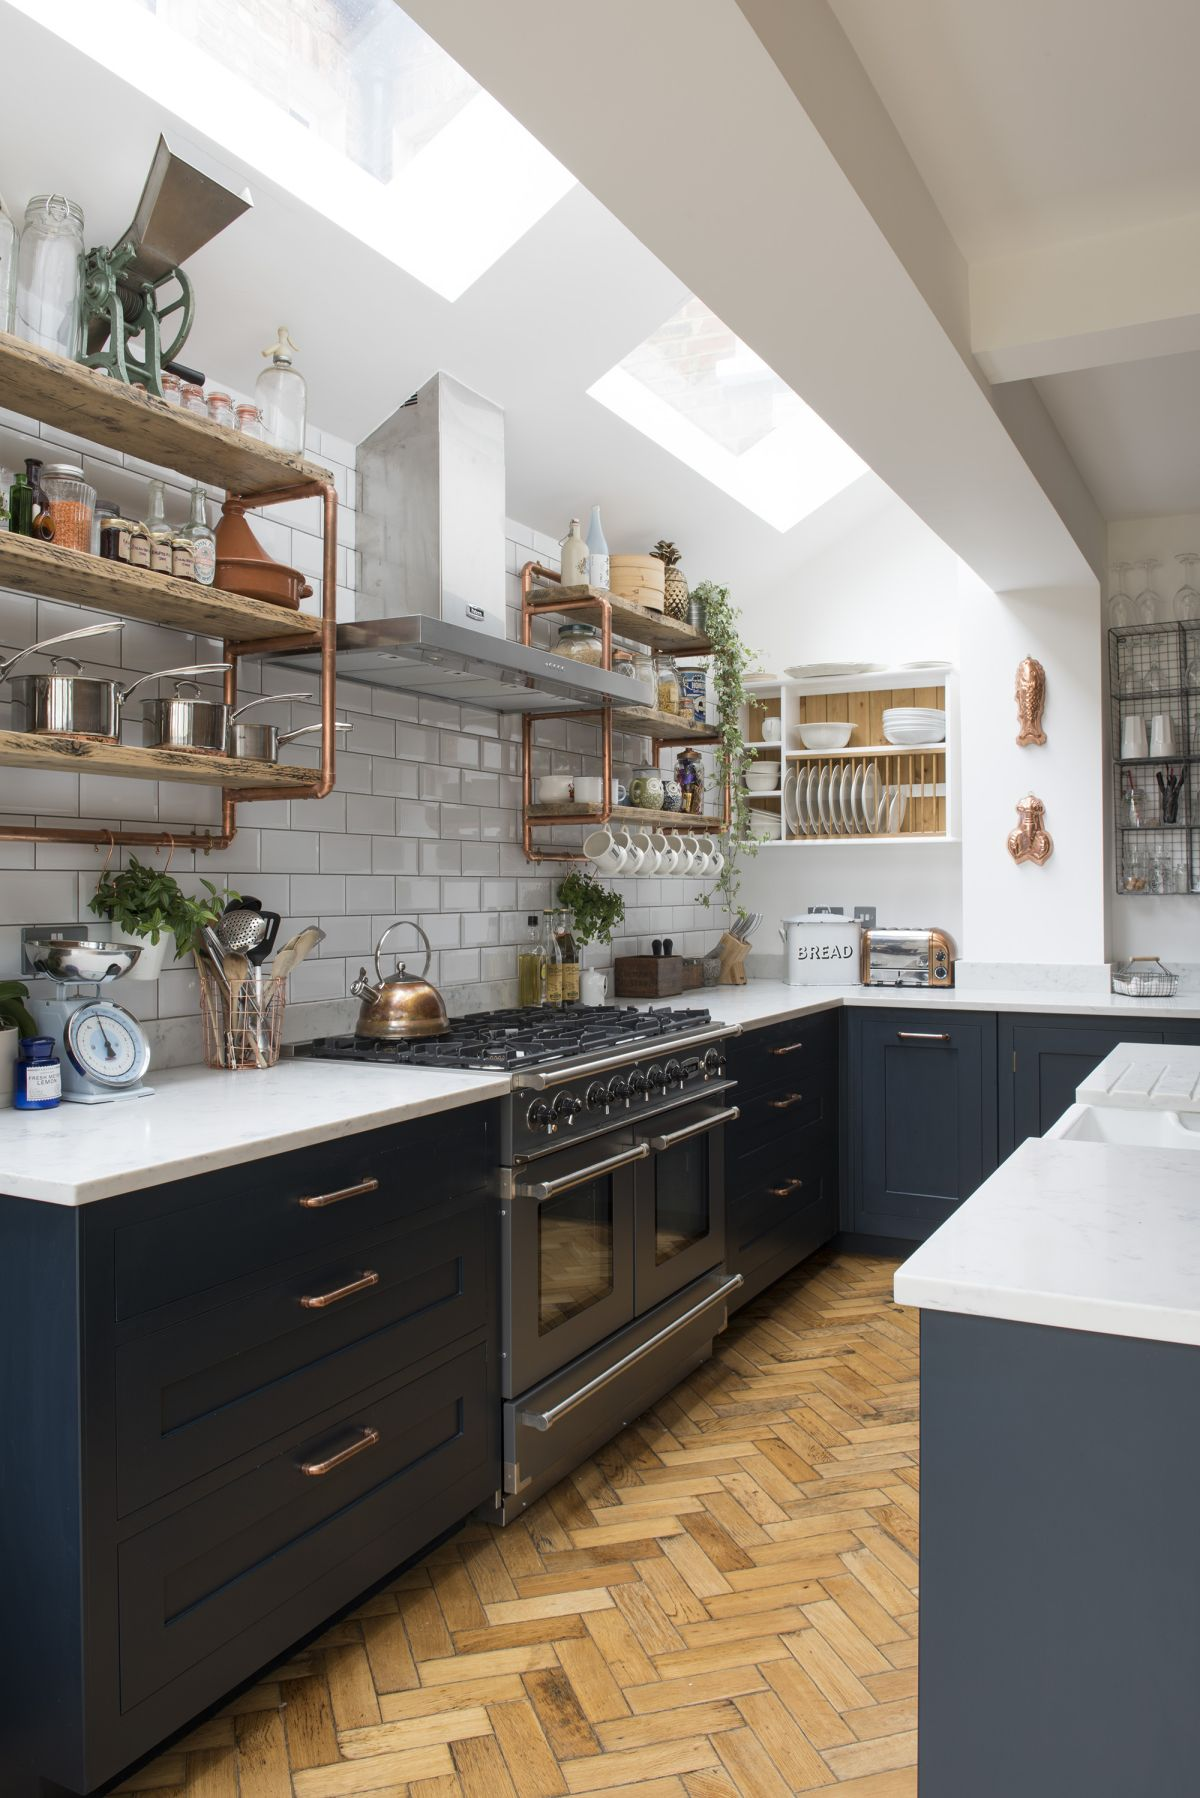 Georgian and Victorian kitchen inspiration: how to design and